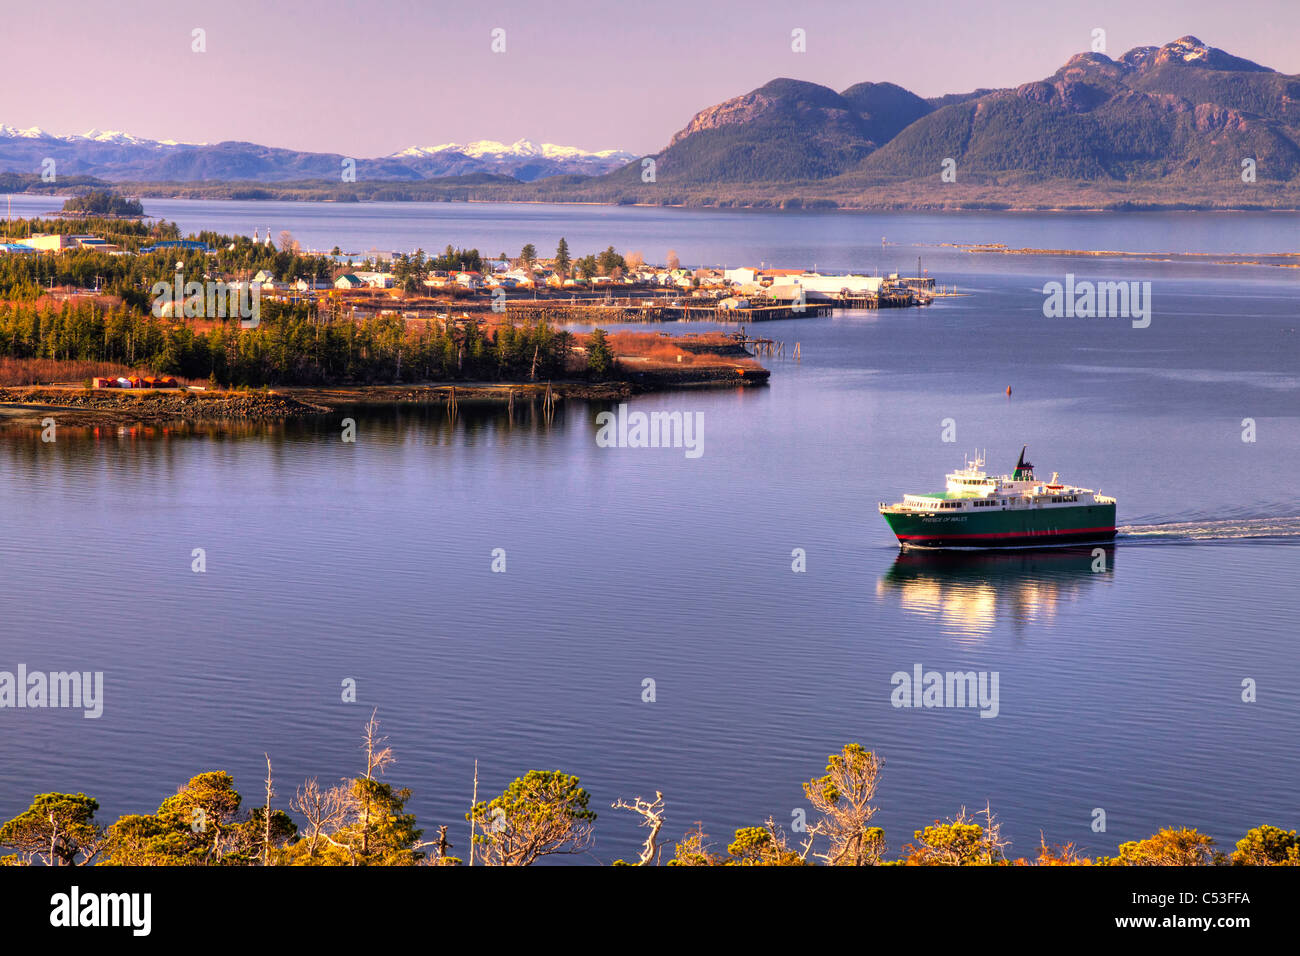 View of Metlakatla, Annette Island, and surrounding coastal area with a ferry in the foreground, Inside Passage, - Stock Image